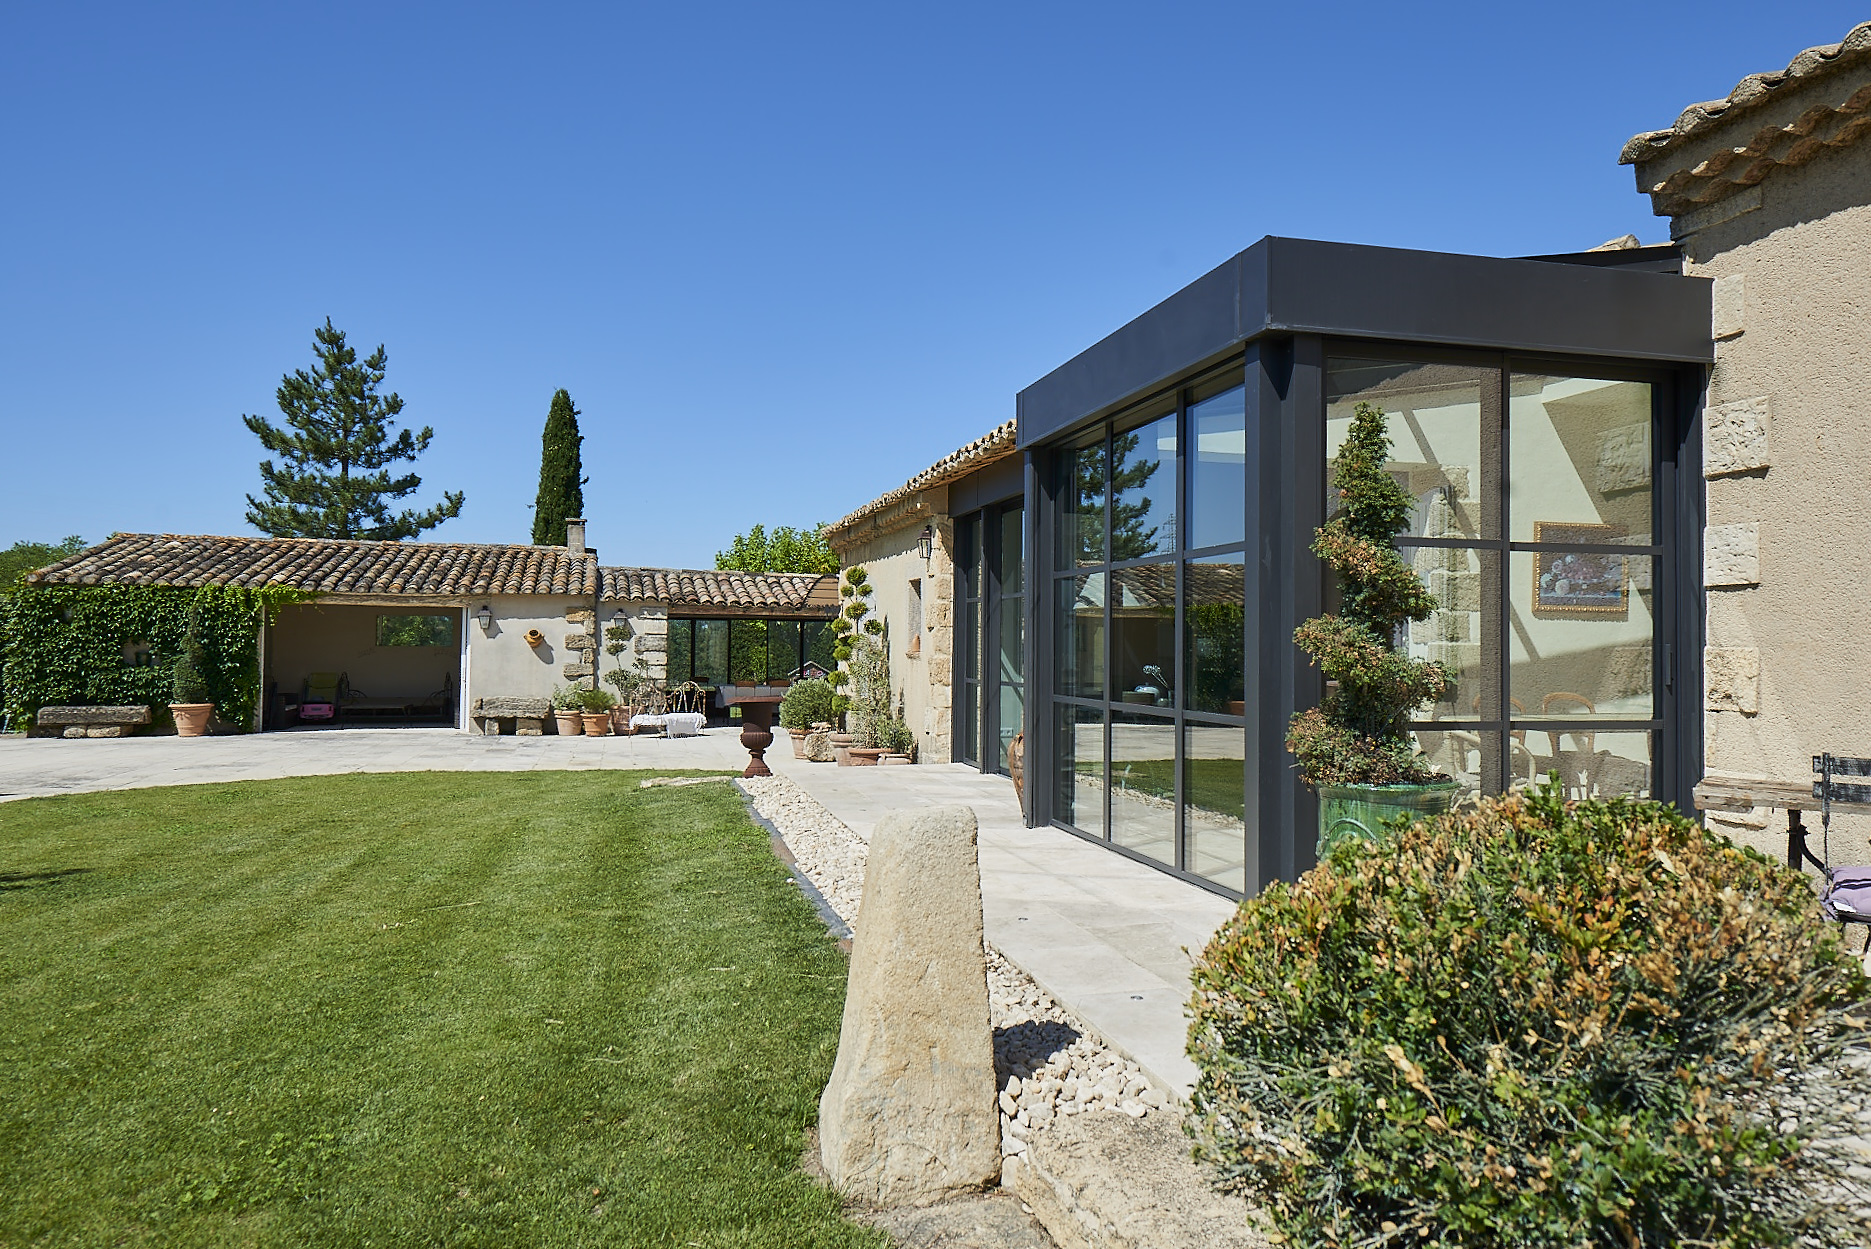 Extension d 39 une maison proven ale r novation technal for Agrandissement maison besoin architecte